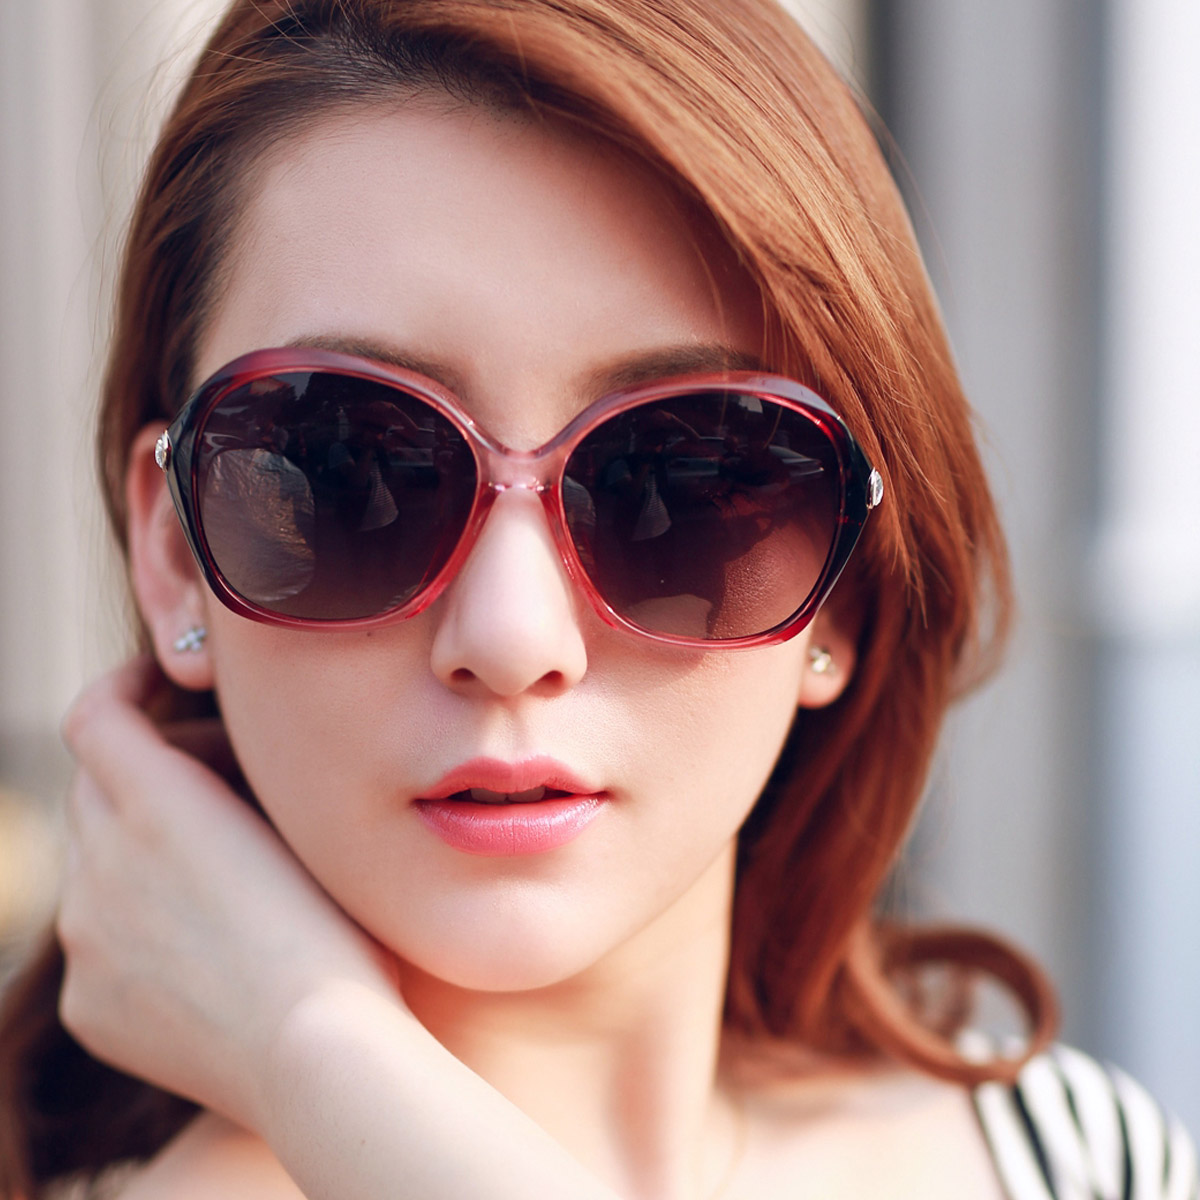 The new female sunglasses large frame sunglasses female ultralight myopia can be equipped with myopia sunglasses polarizer tide